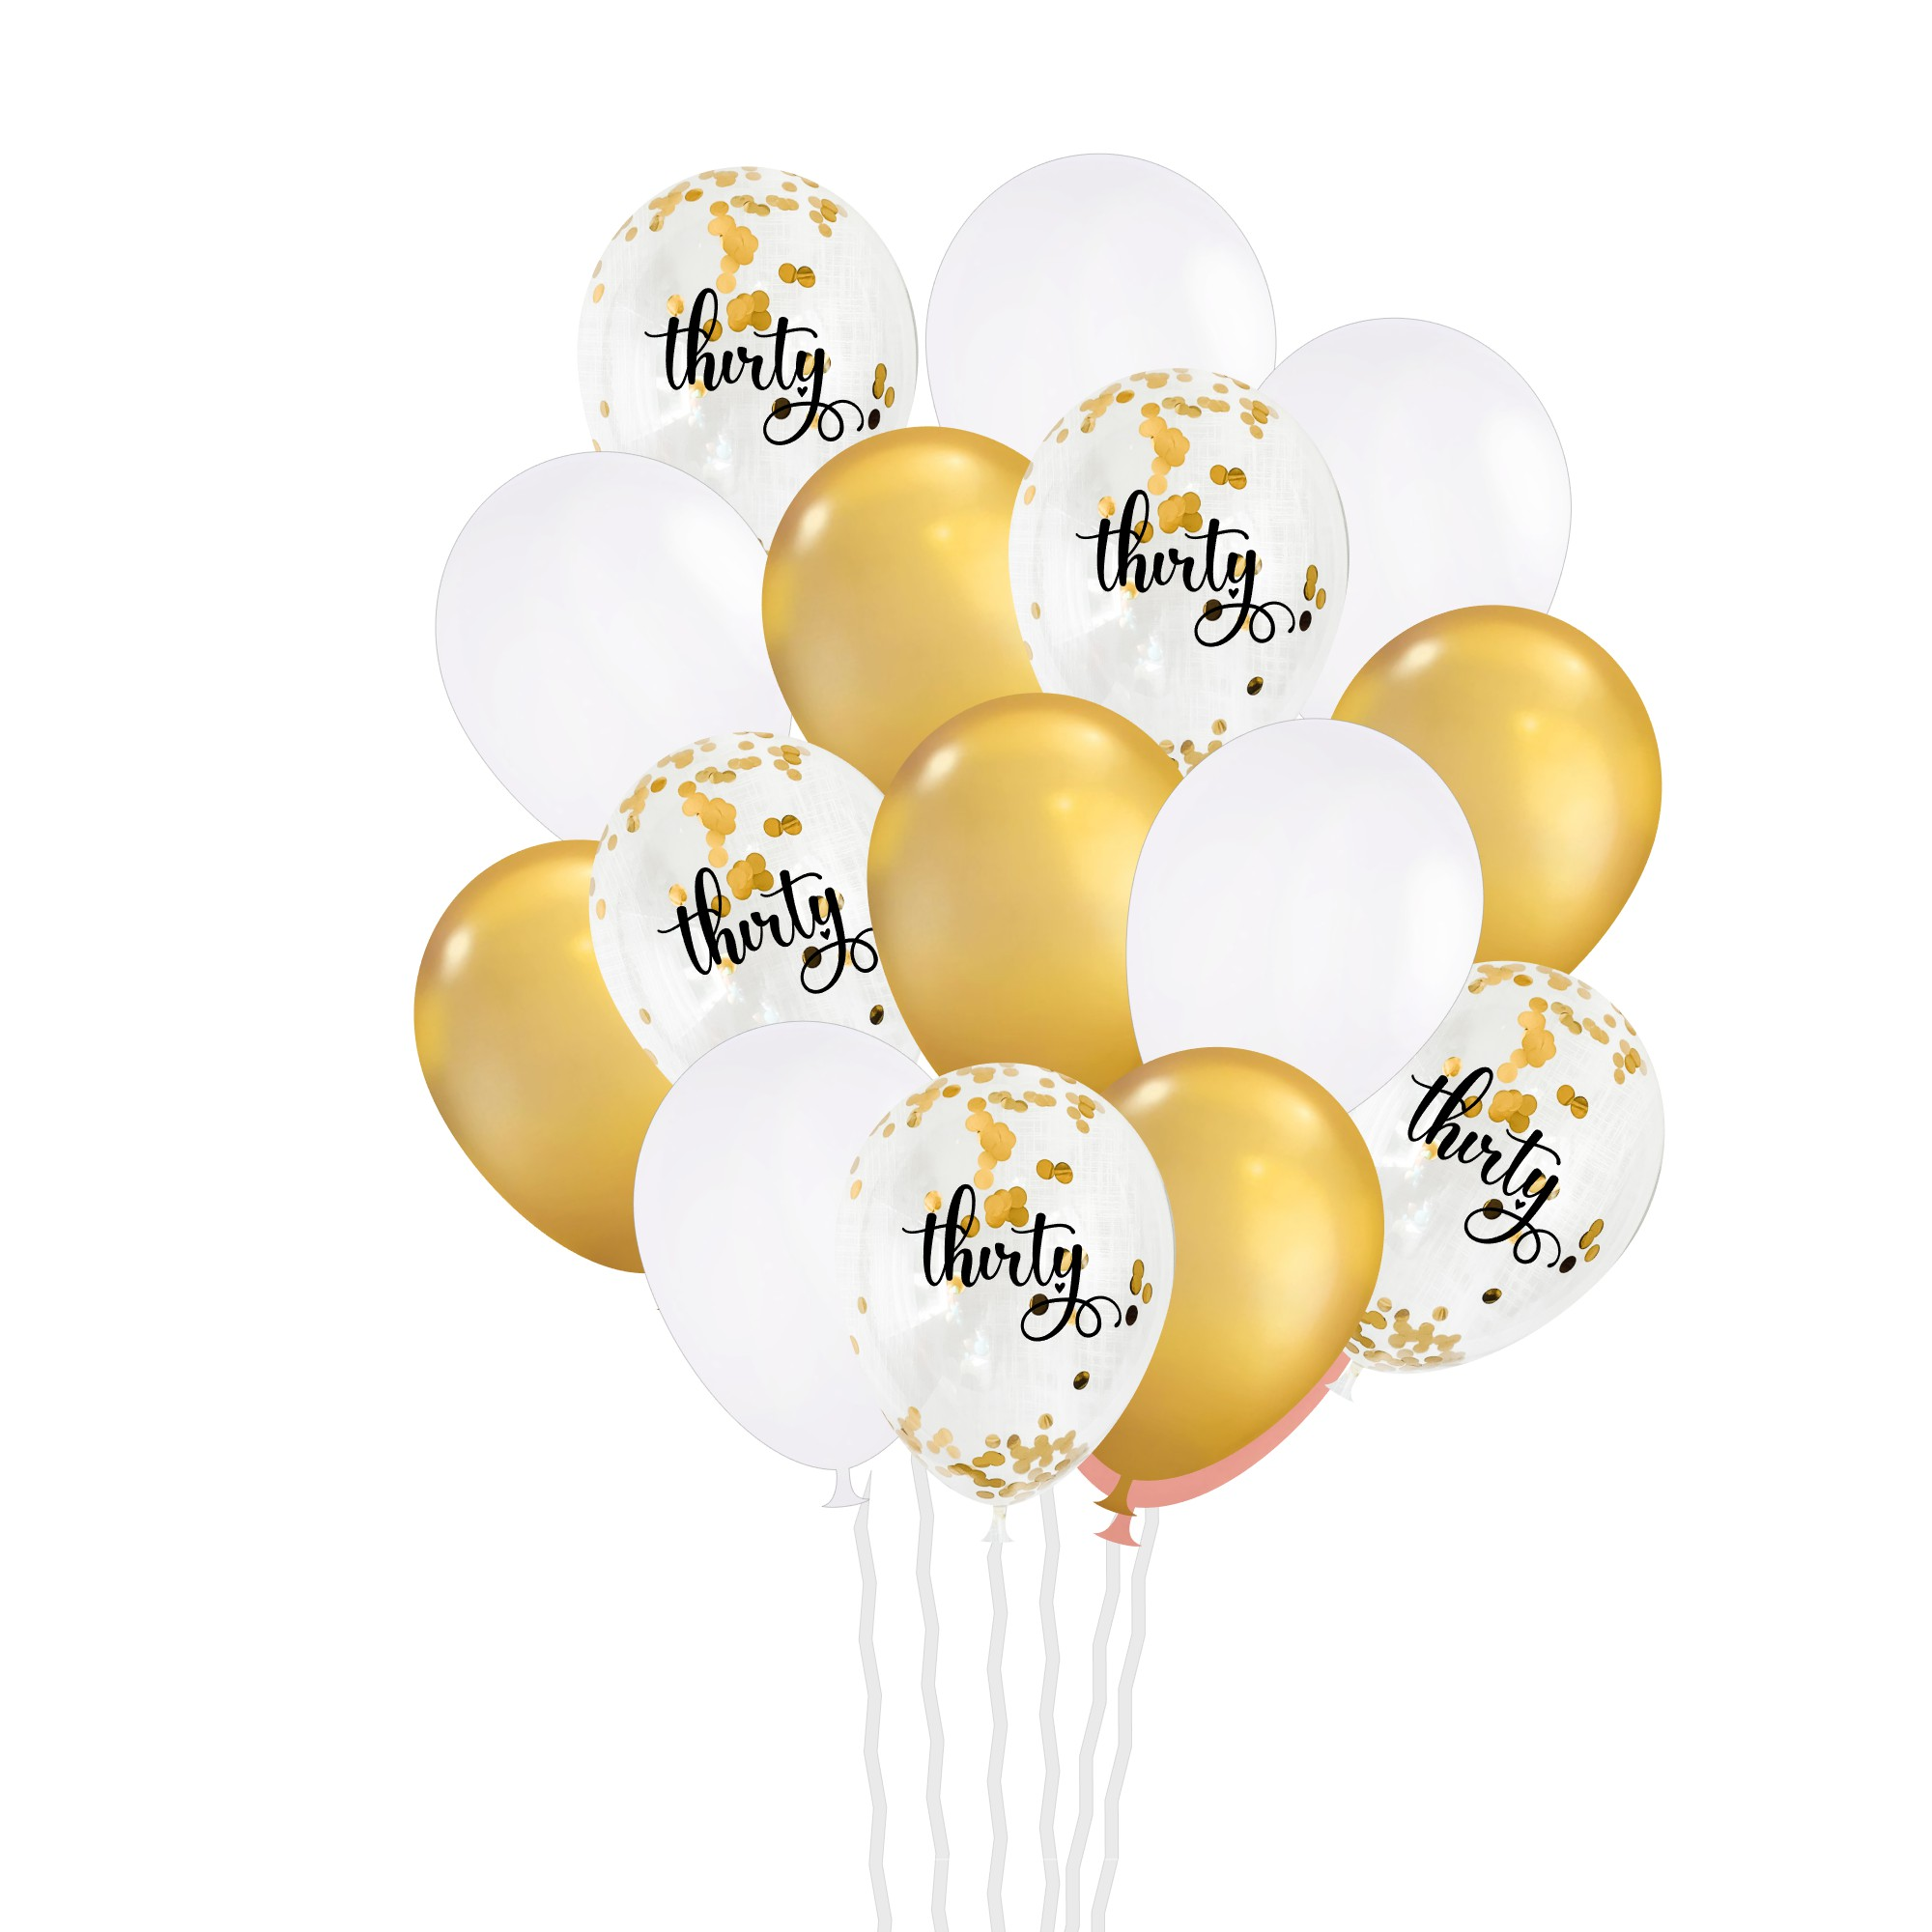 30th Birthday Balloon Bouquet For Women Party Supplies For Women